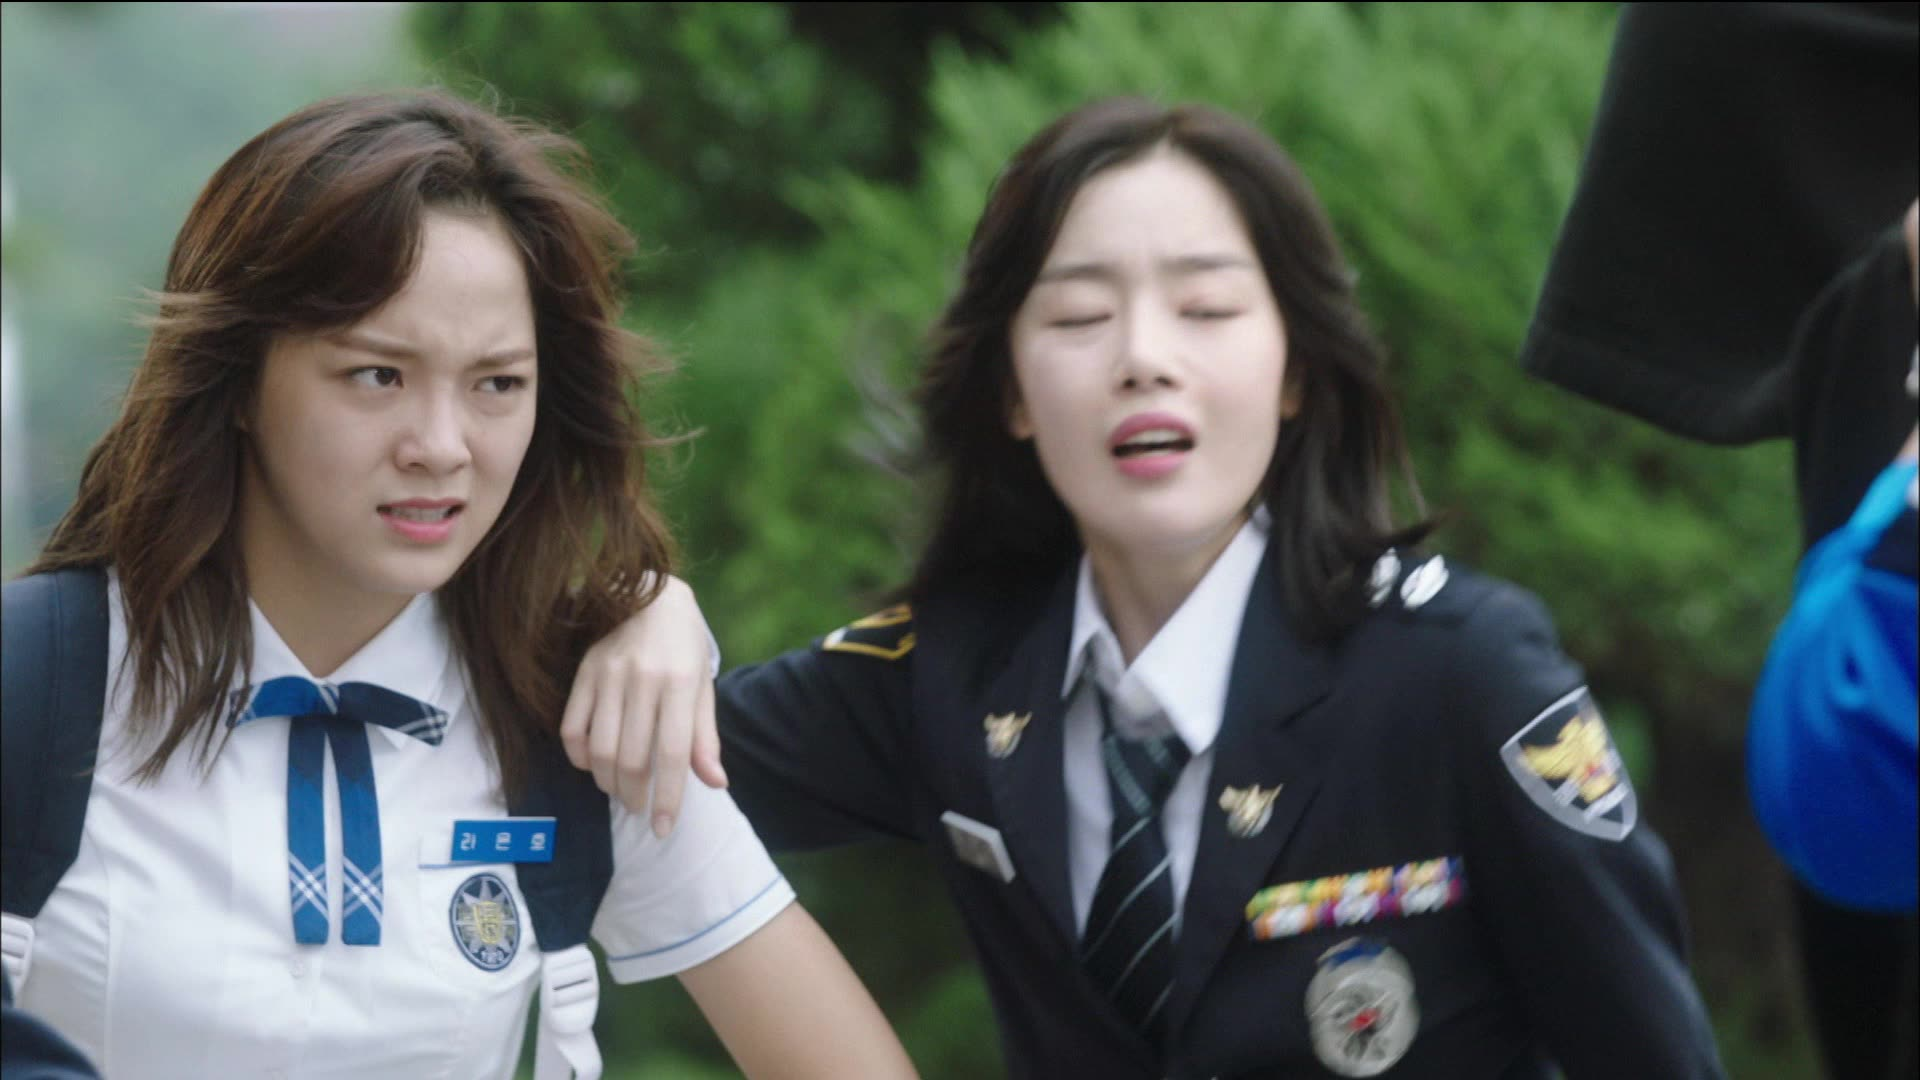 School 2017 Episode 3